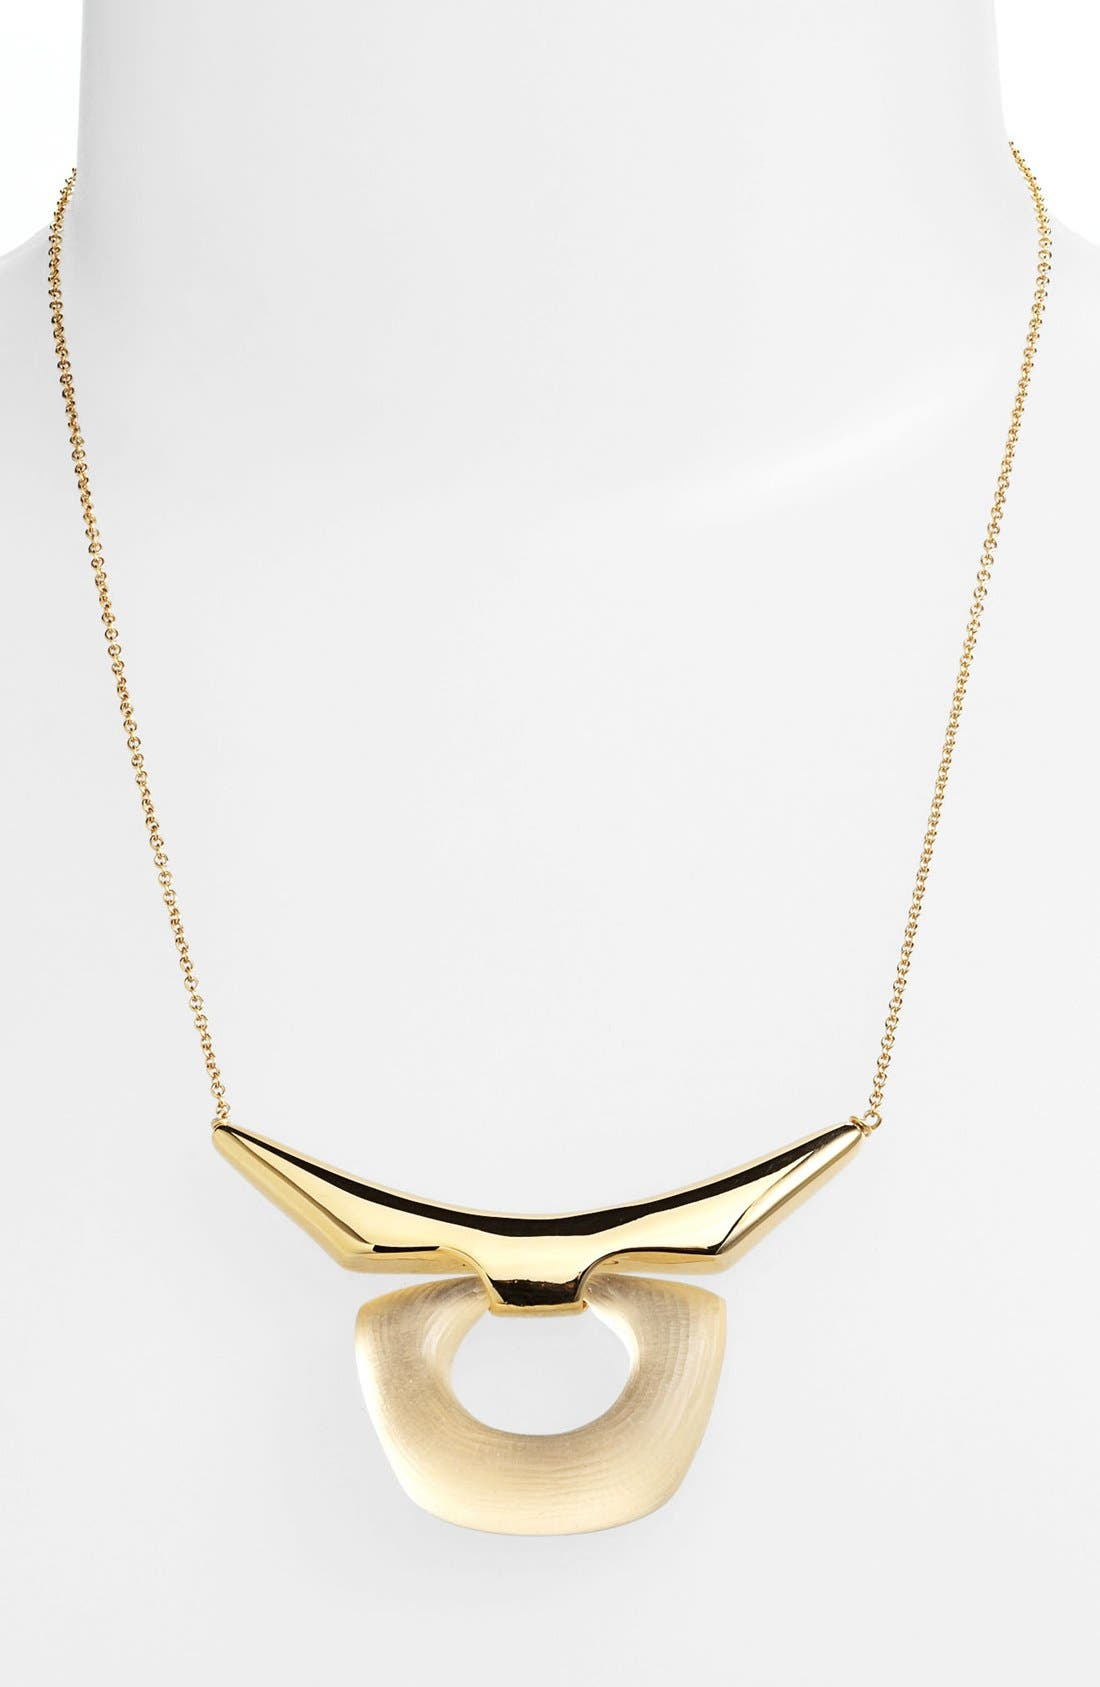 Main Image - Alexis Bittar 'Lucite®' Frontal Necklace